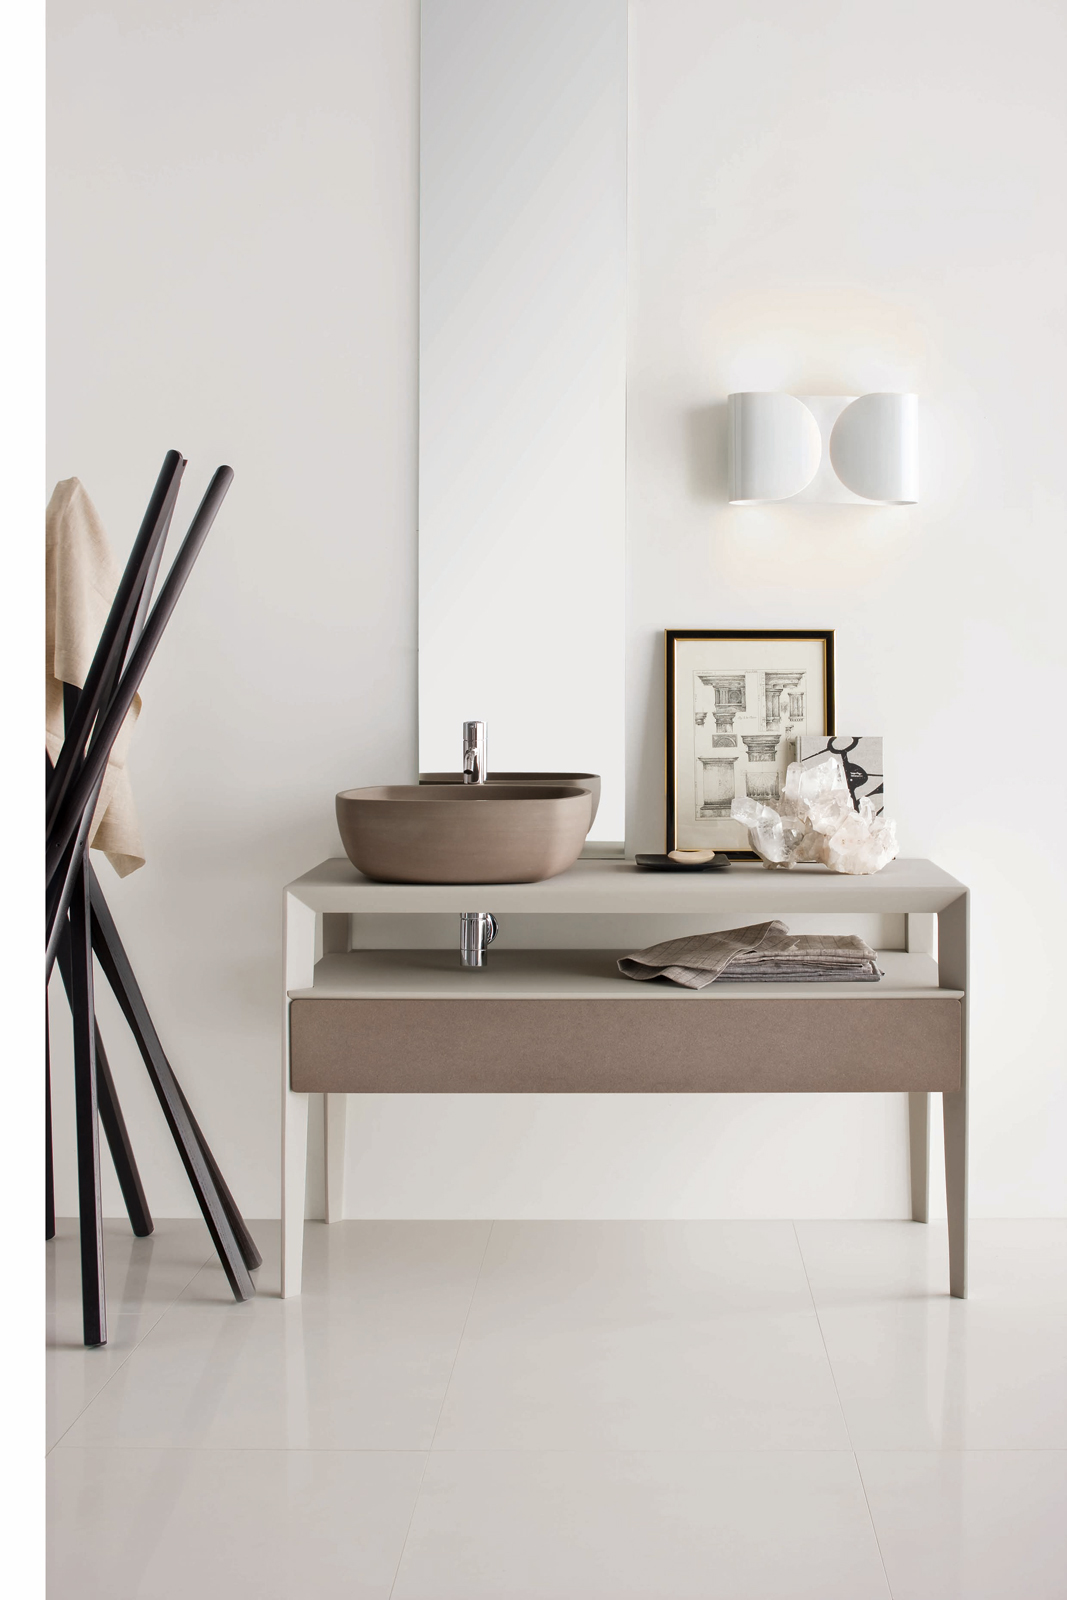 Inkstone wash-basin in Sand Brown stone with Neos furniture in an Ice silk finish, with Sand Brown stone fronts (Neos furniture designed by Luca Martorano).